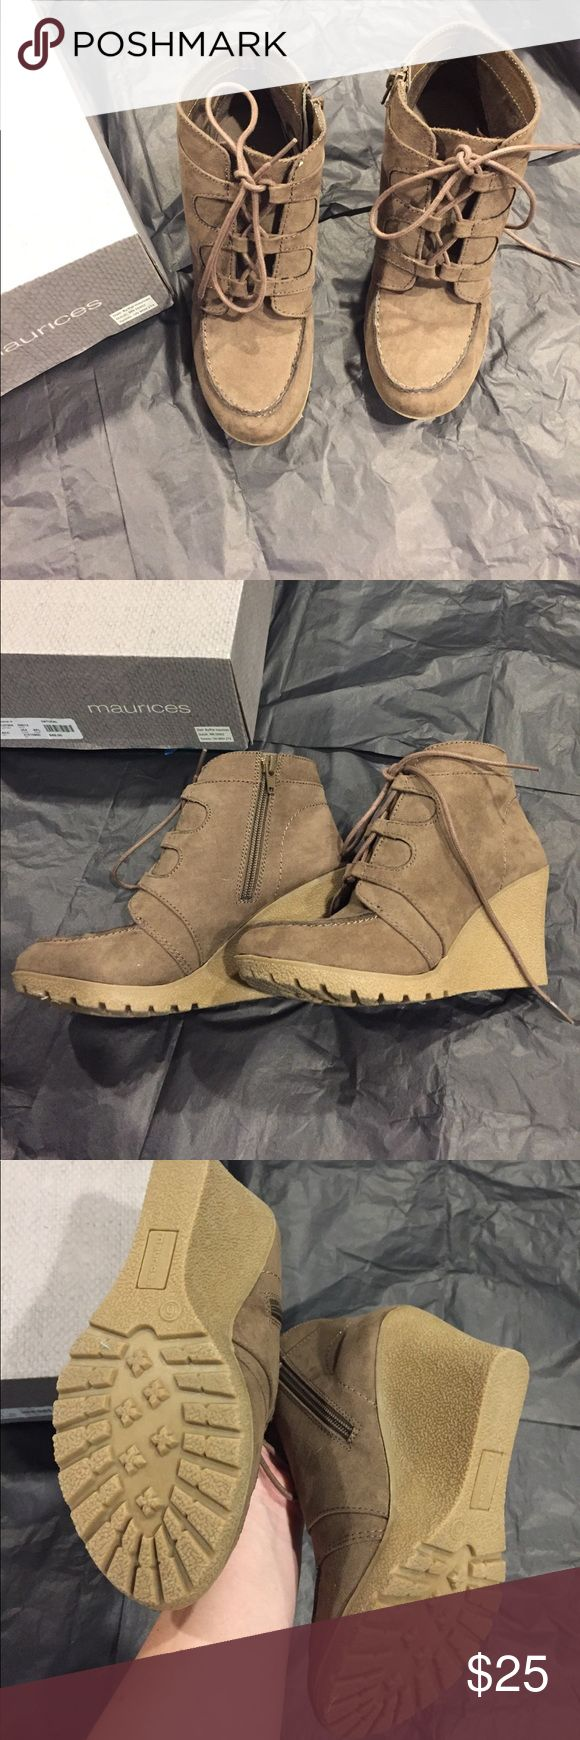 Maurice's wedge booties Tan colored wedge booties, never worn.zipper on the inside of the boot. Will come with box! Maurices Shoes Wedges